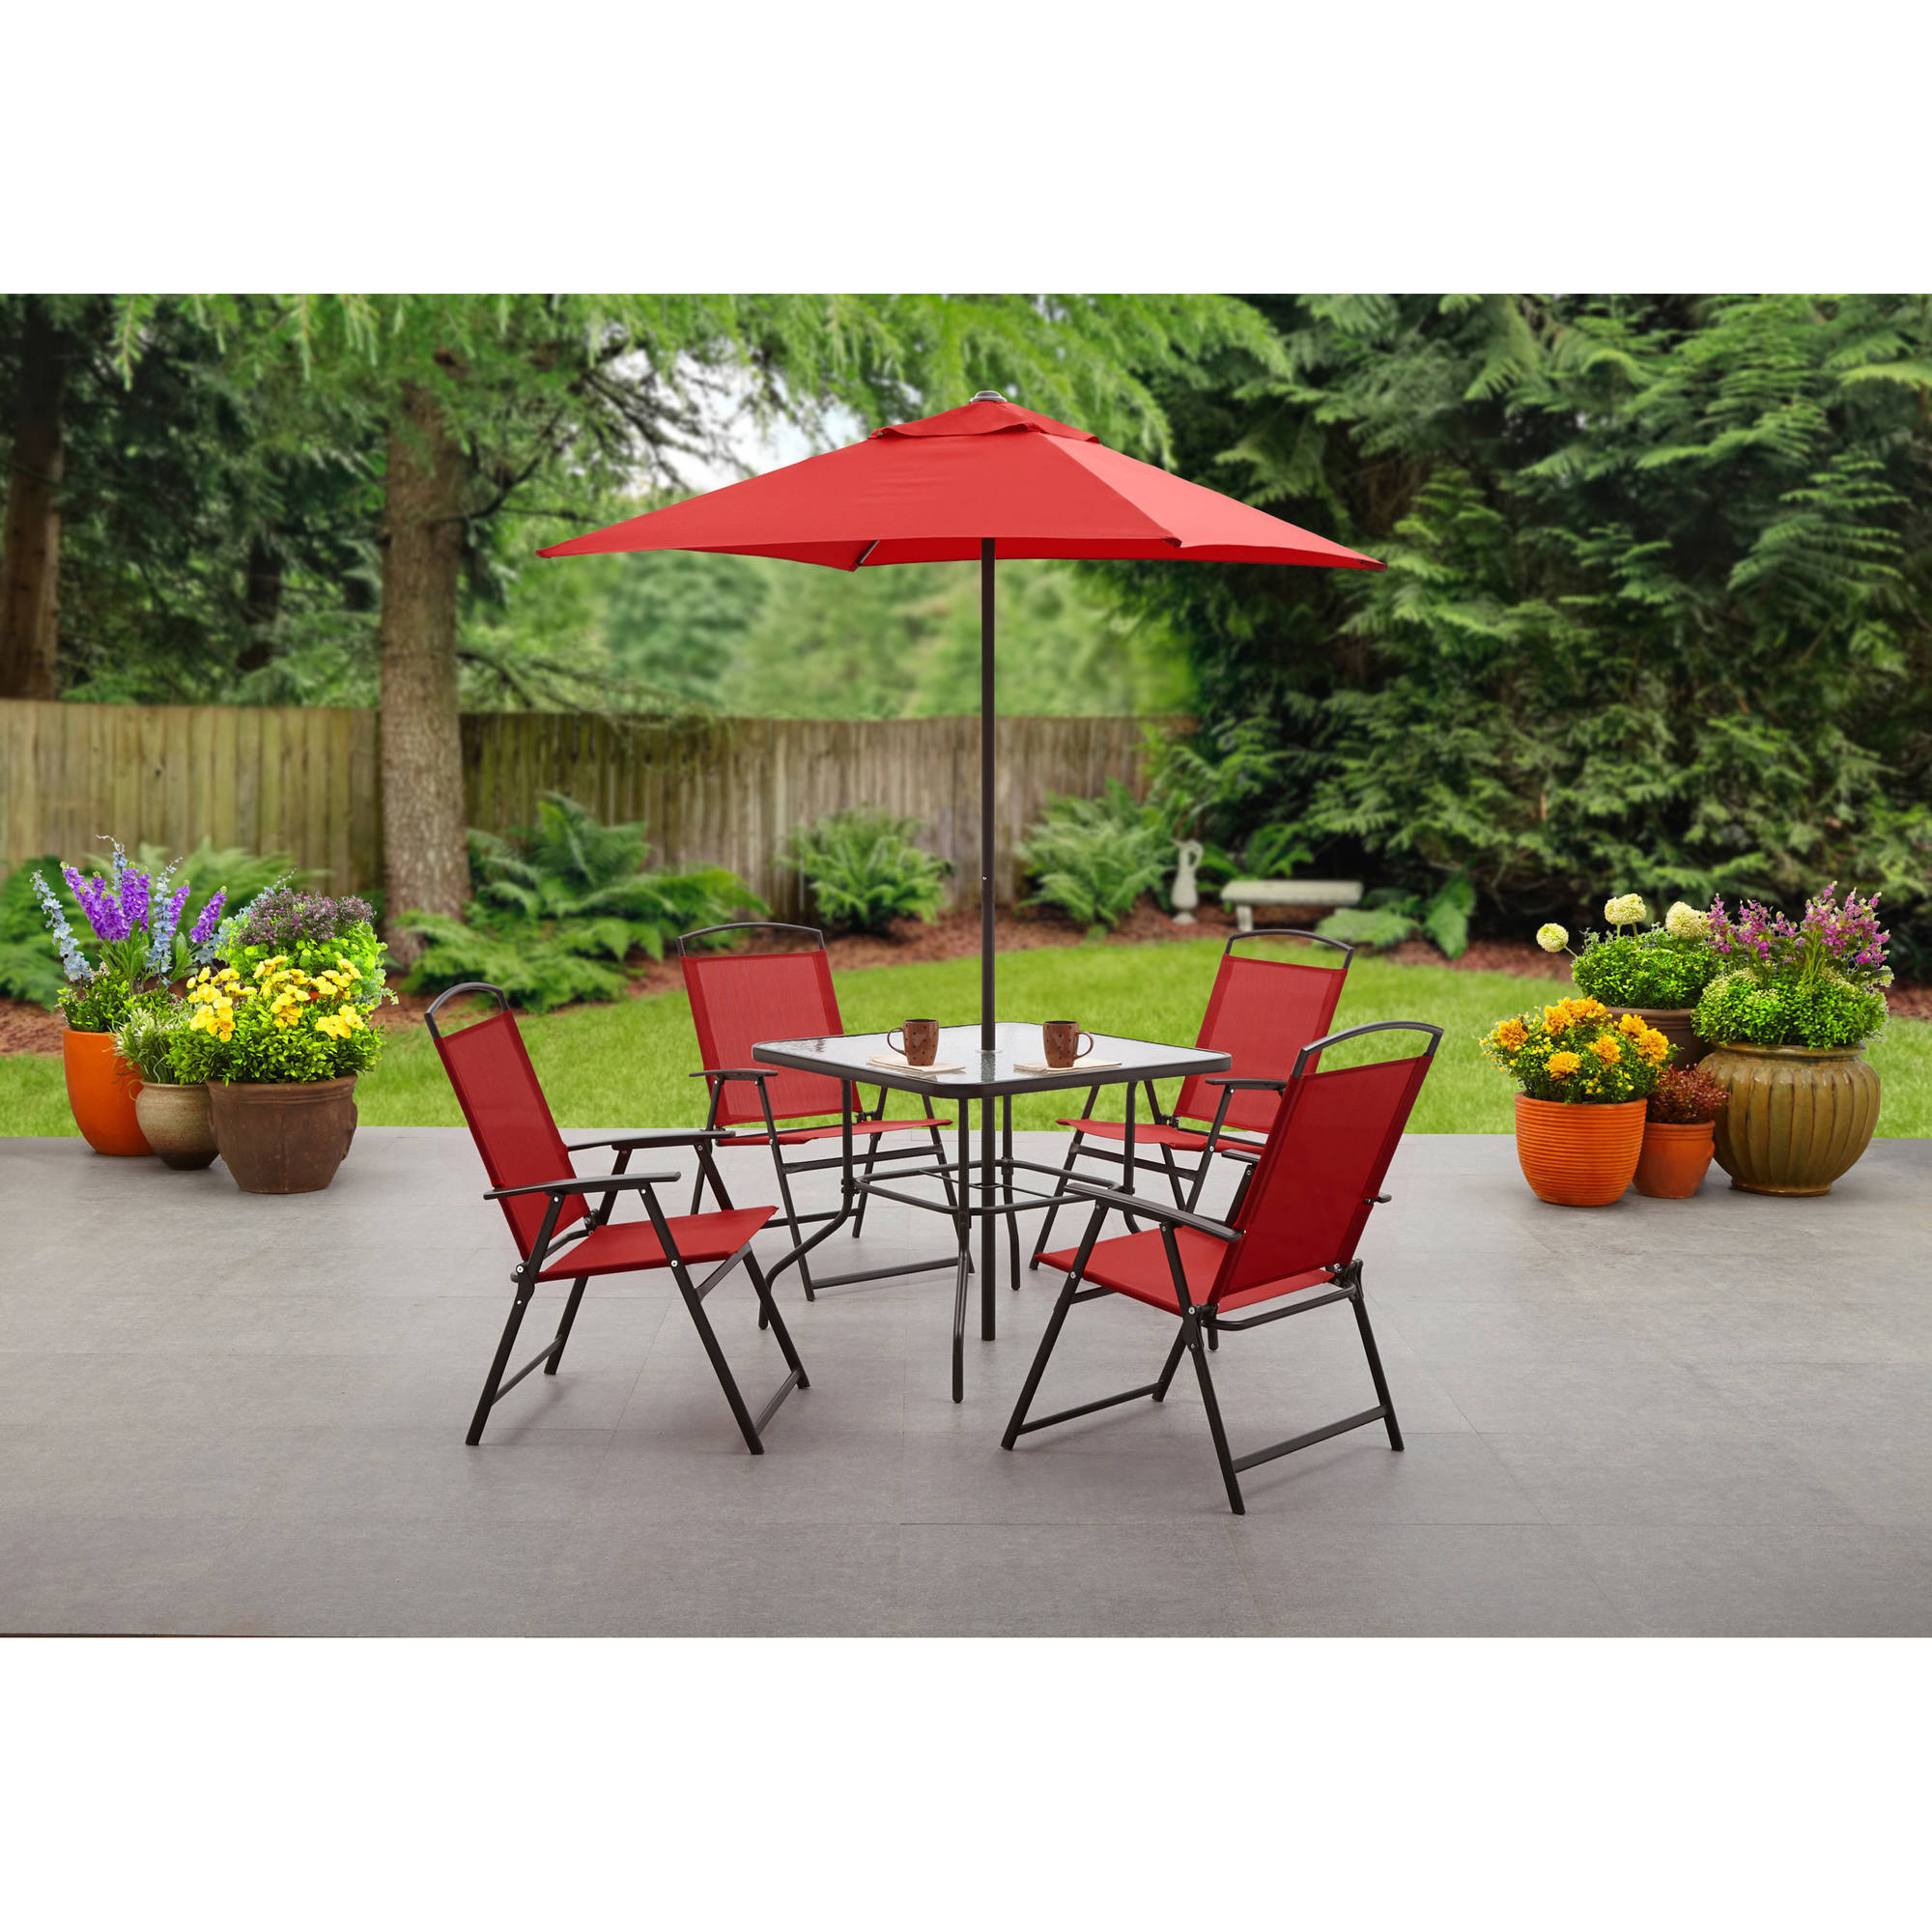 Costway 6 Pcs Patio Garden Set Furniture Umbrella Gray With 4 Folding Chairs Table Com